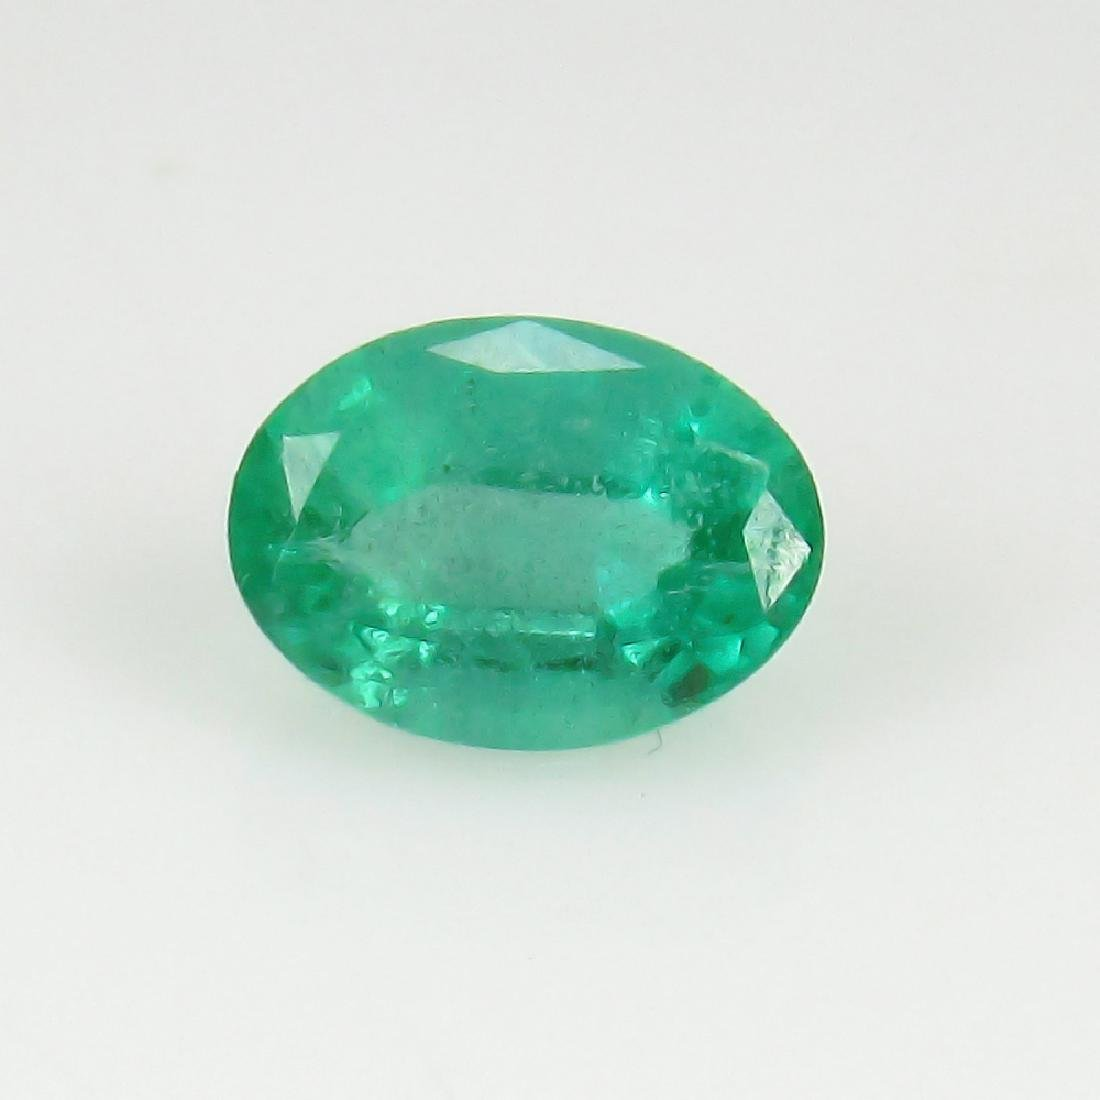 0.94 Ct IGI Certified Genuine Zambian Emerald Nice Oval